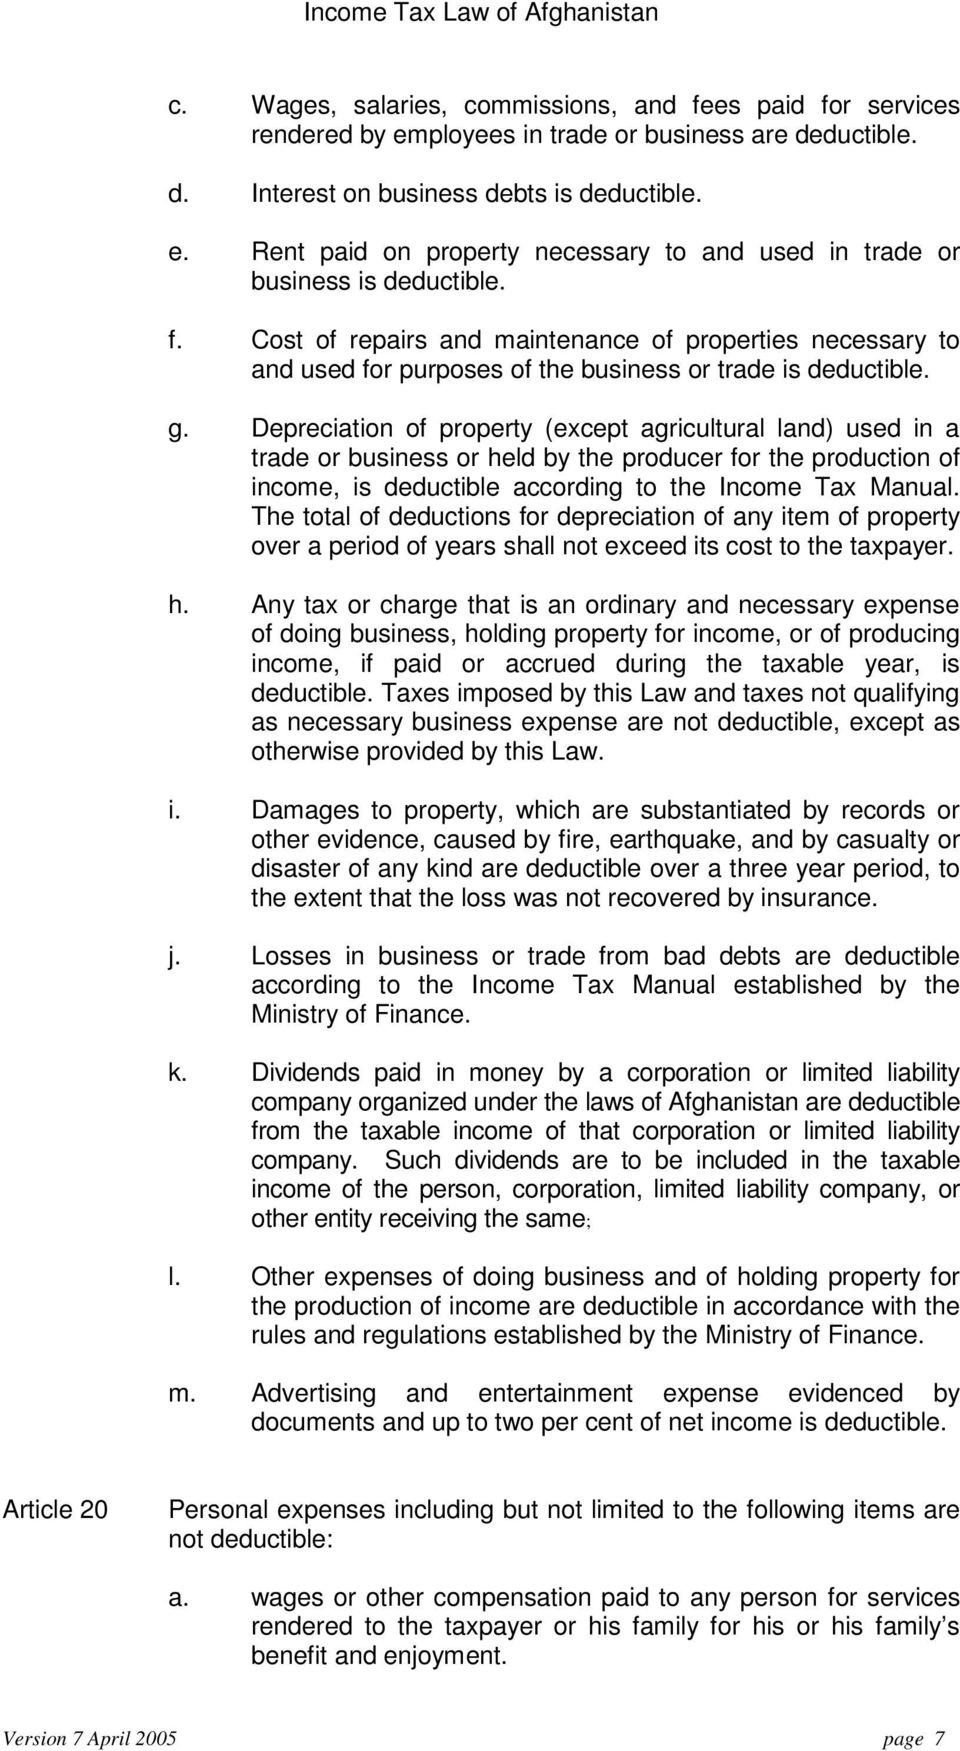 Depreciation of property (except agricultural land) used in a trade or business or held by the producer for the production of income, is deductible according to the Income Tax Manual.